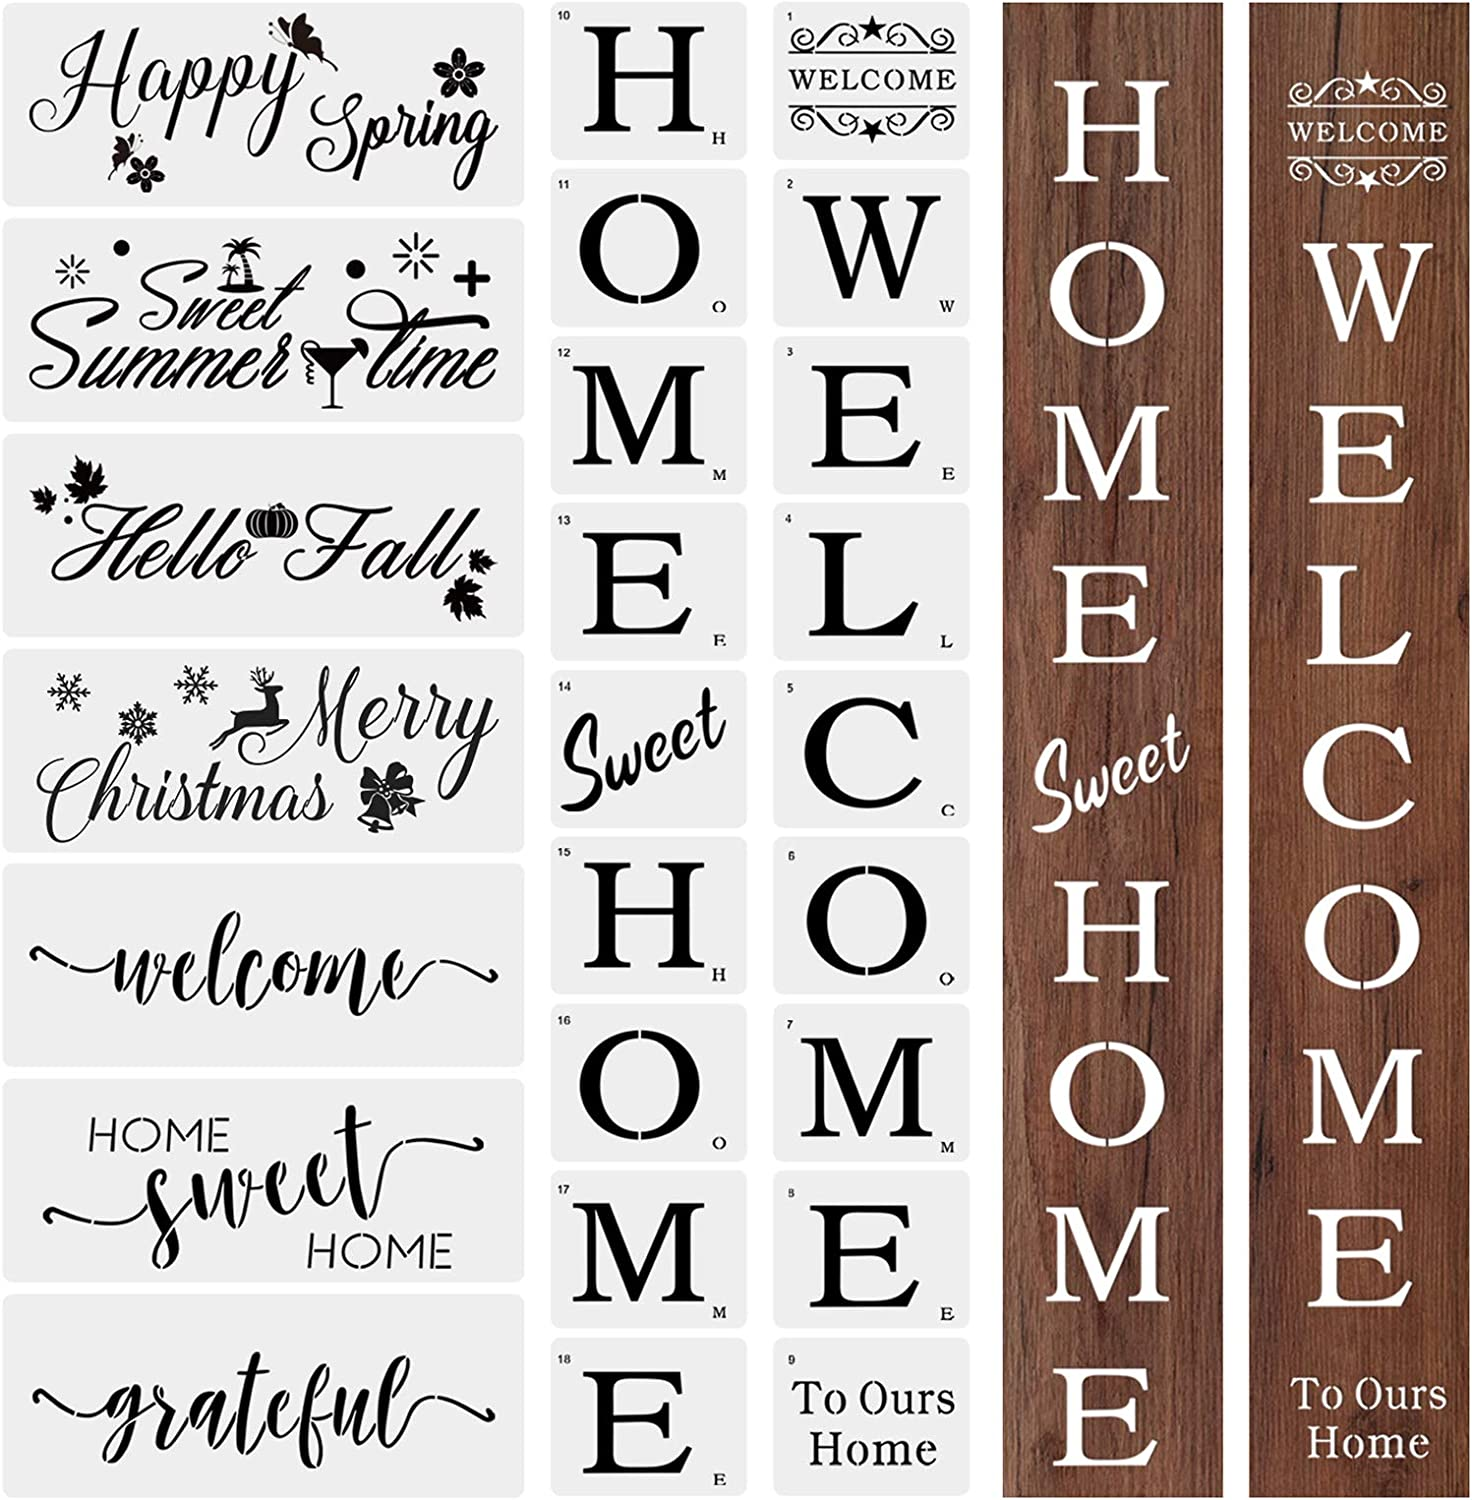 25 PCS Large Welcome and Home Sign Stencils Kit, Welcome Stencil Sweet Home Stencil Seasonal Stencils Grateful Reusable Template for Creating Painting Beautiful Wood